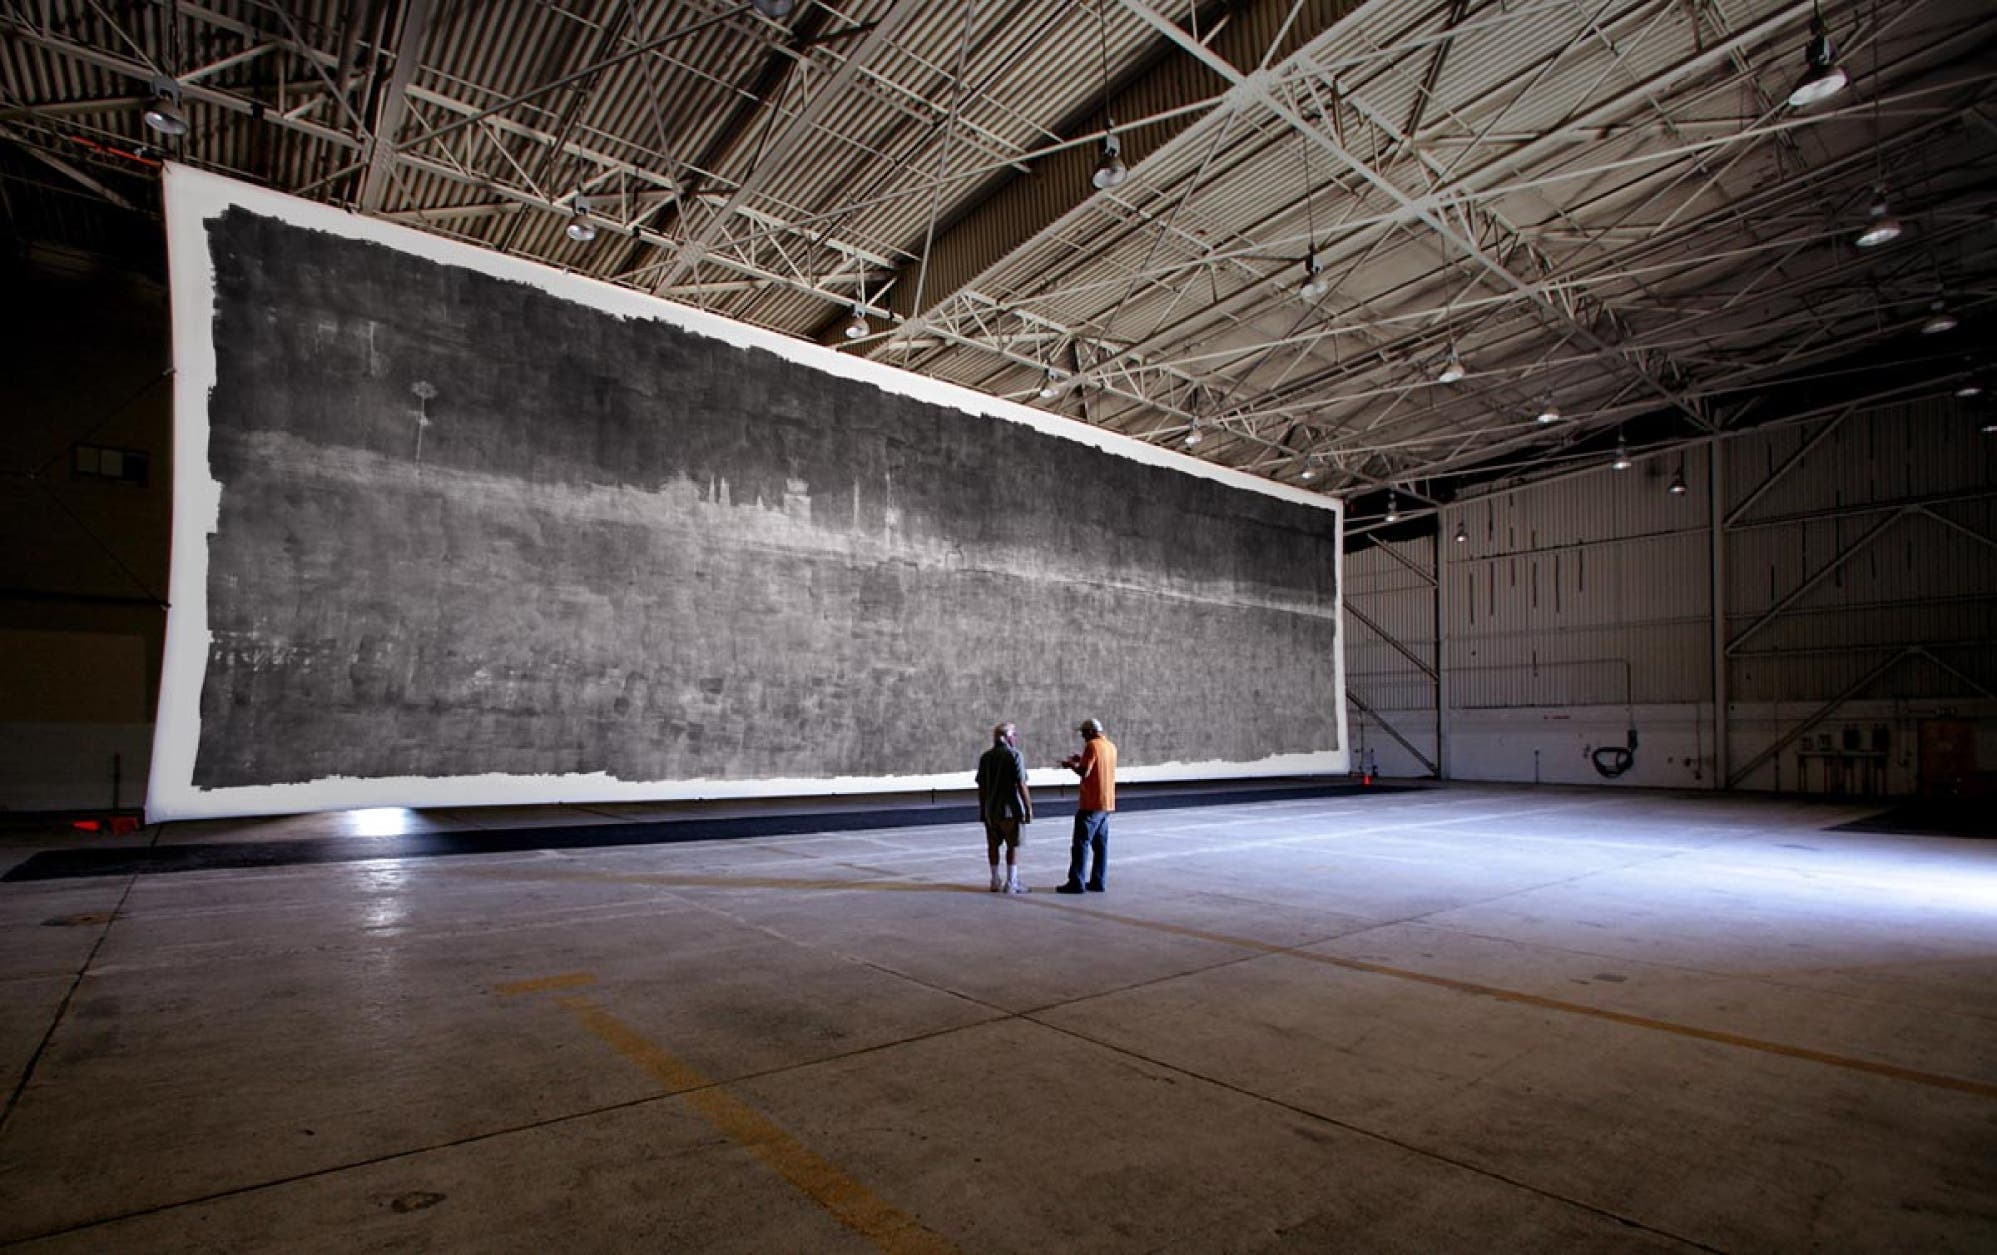 The World's Largest Pinhole Photograph is Literally as Large as an Airplane Hangar